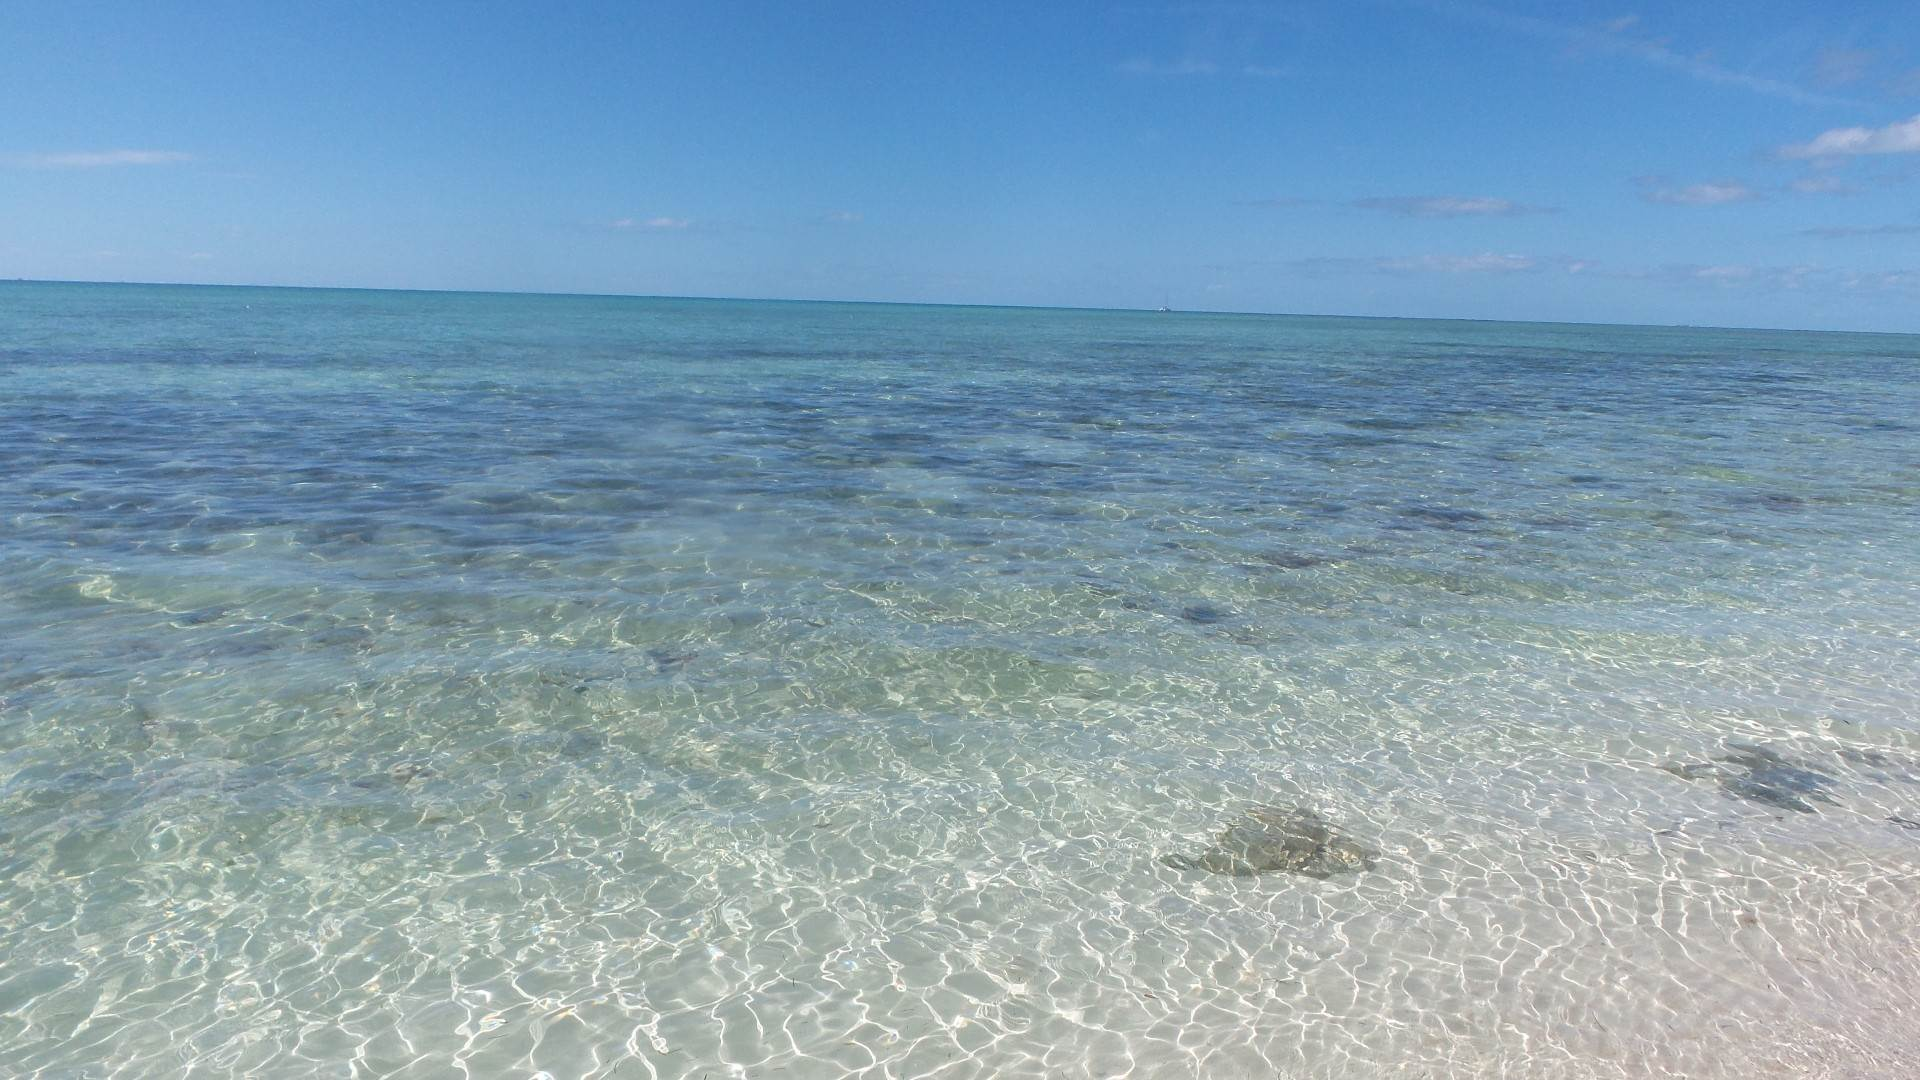 2. Private Islands por un Venta en Large Private Island in Abaco with approved development Plans - MLS 42074 Abaco, Bahamas